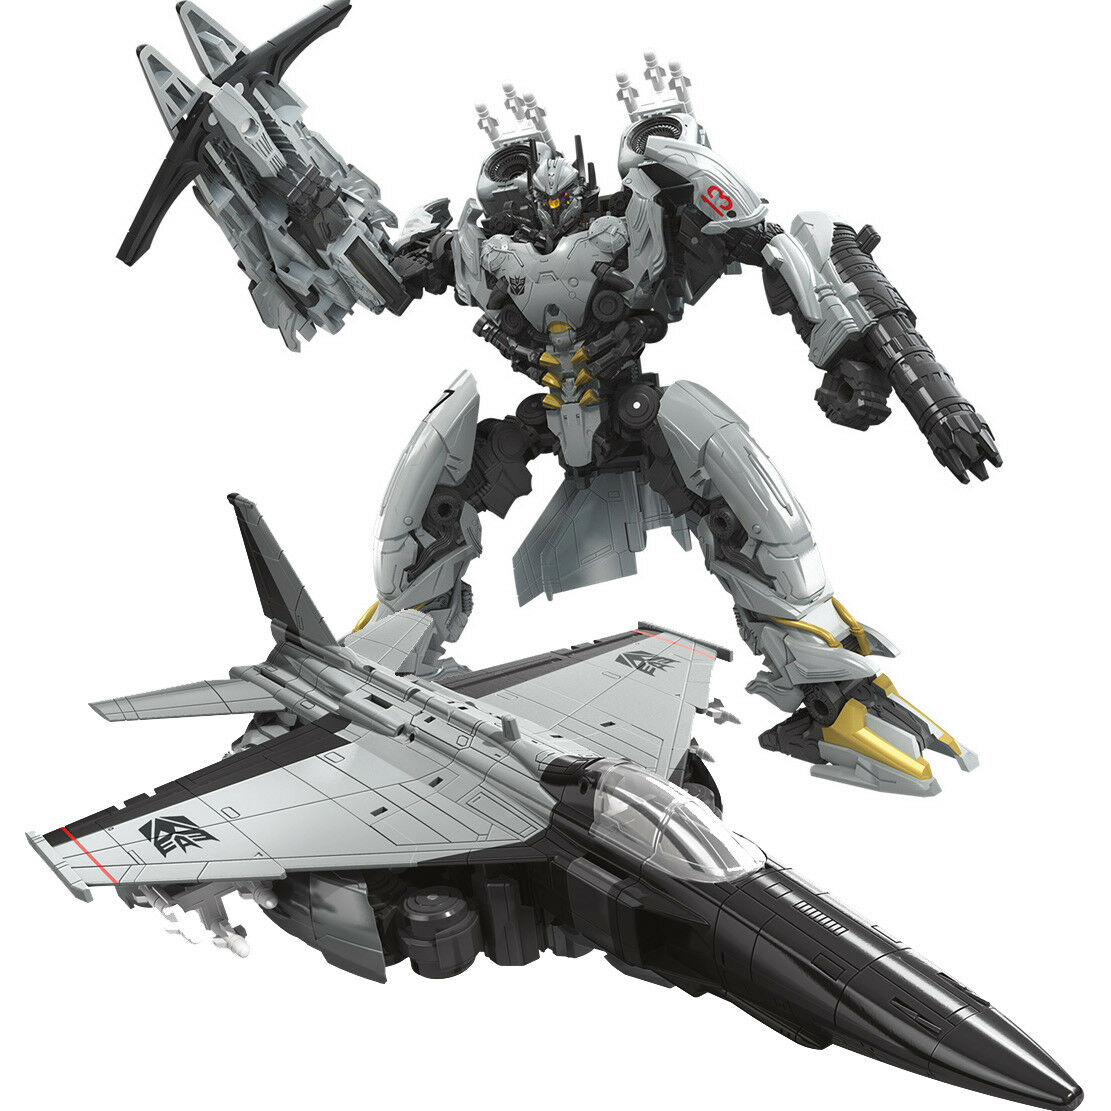 TRANSFORMERS 5 The Last Knight Movie Voyager Nitro ACTION FIGURE NEW